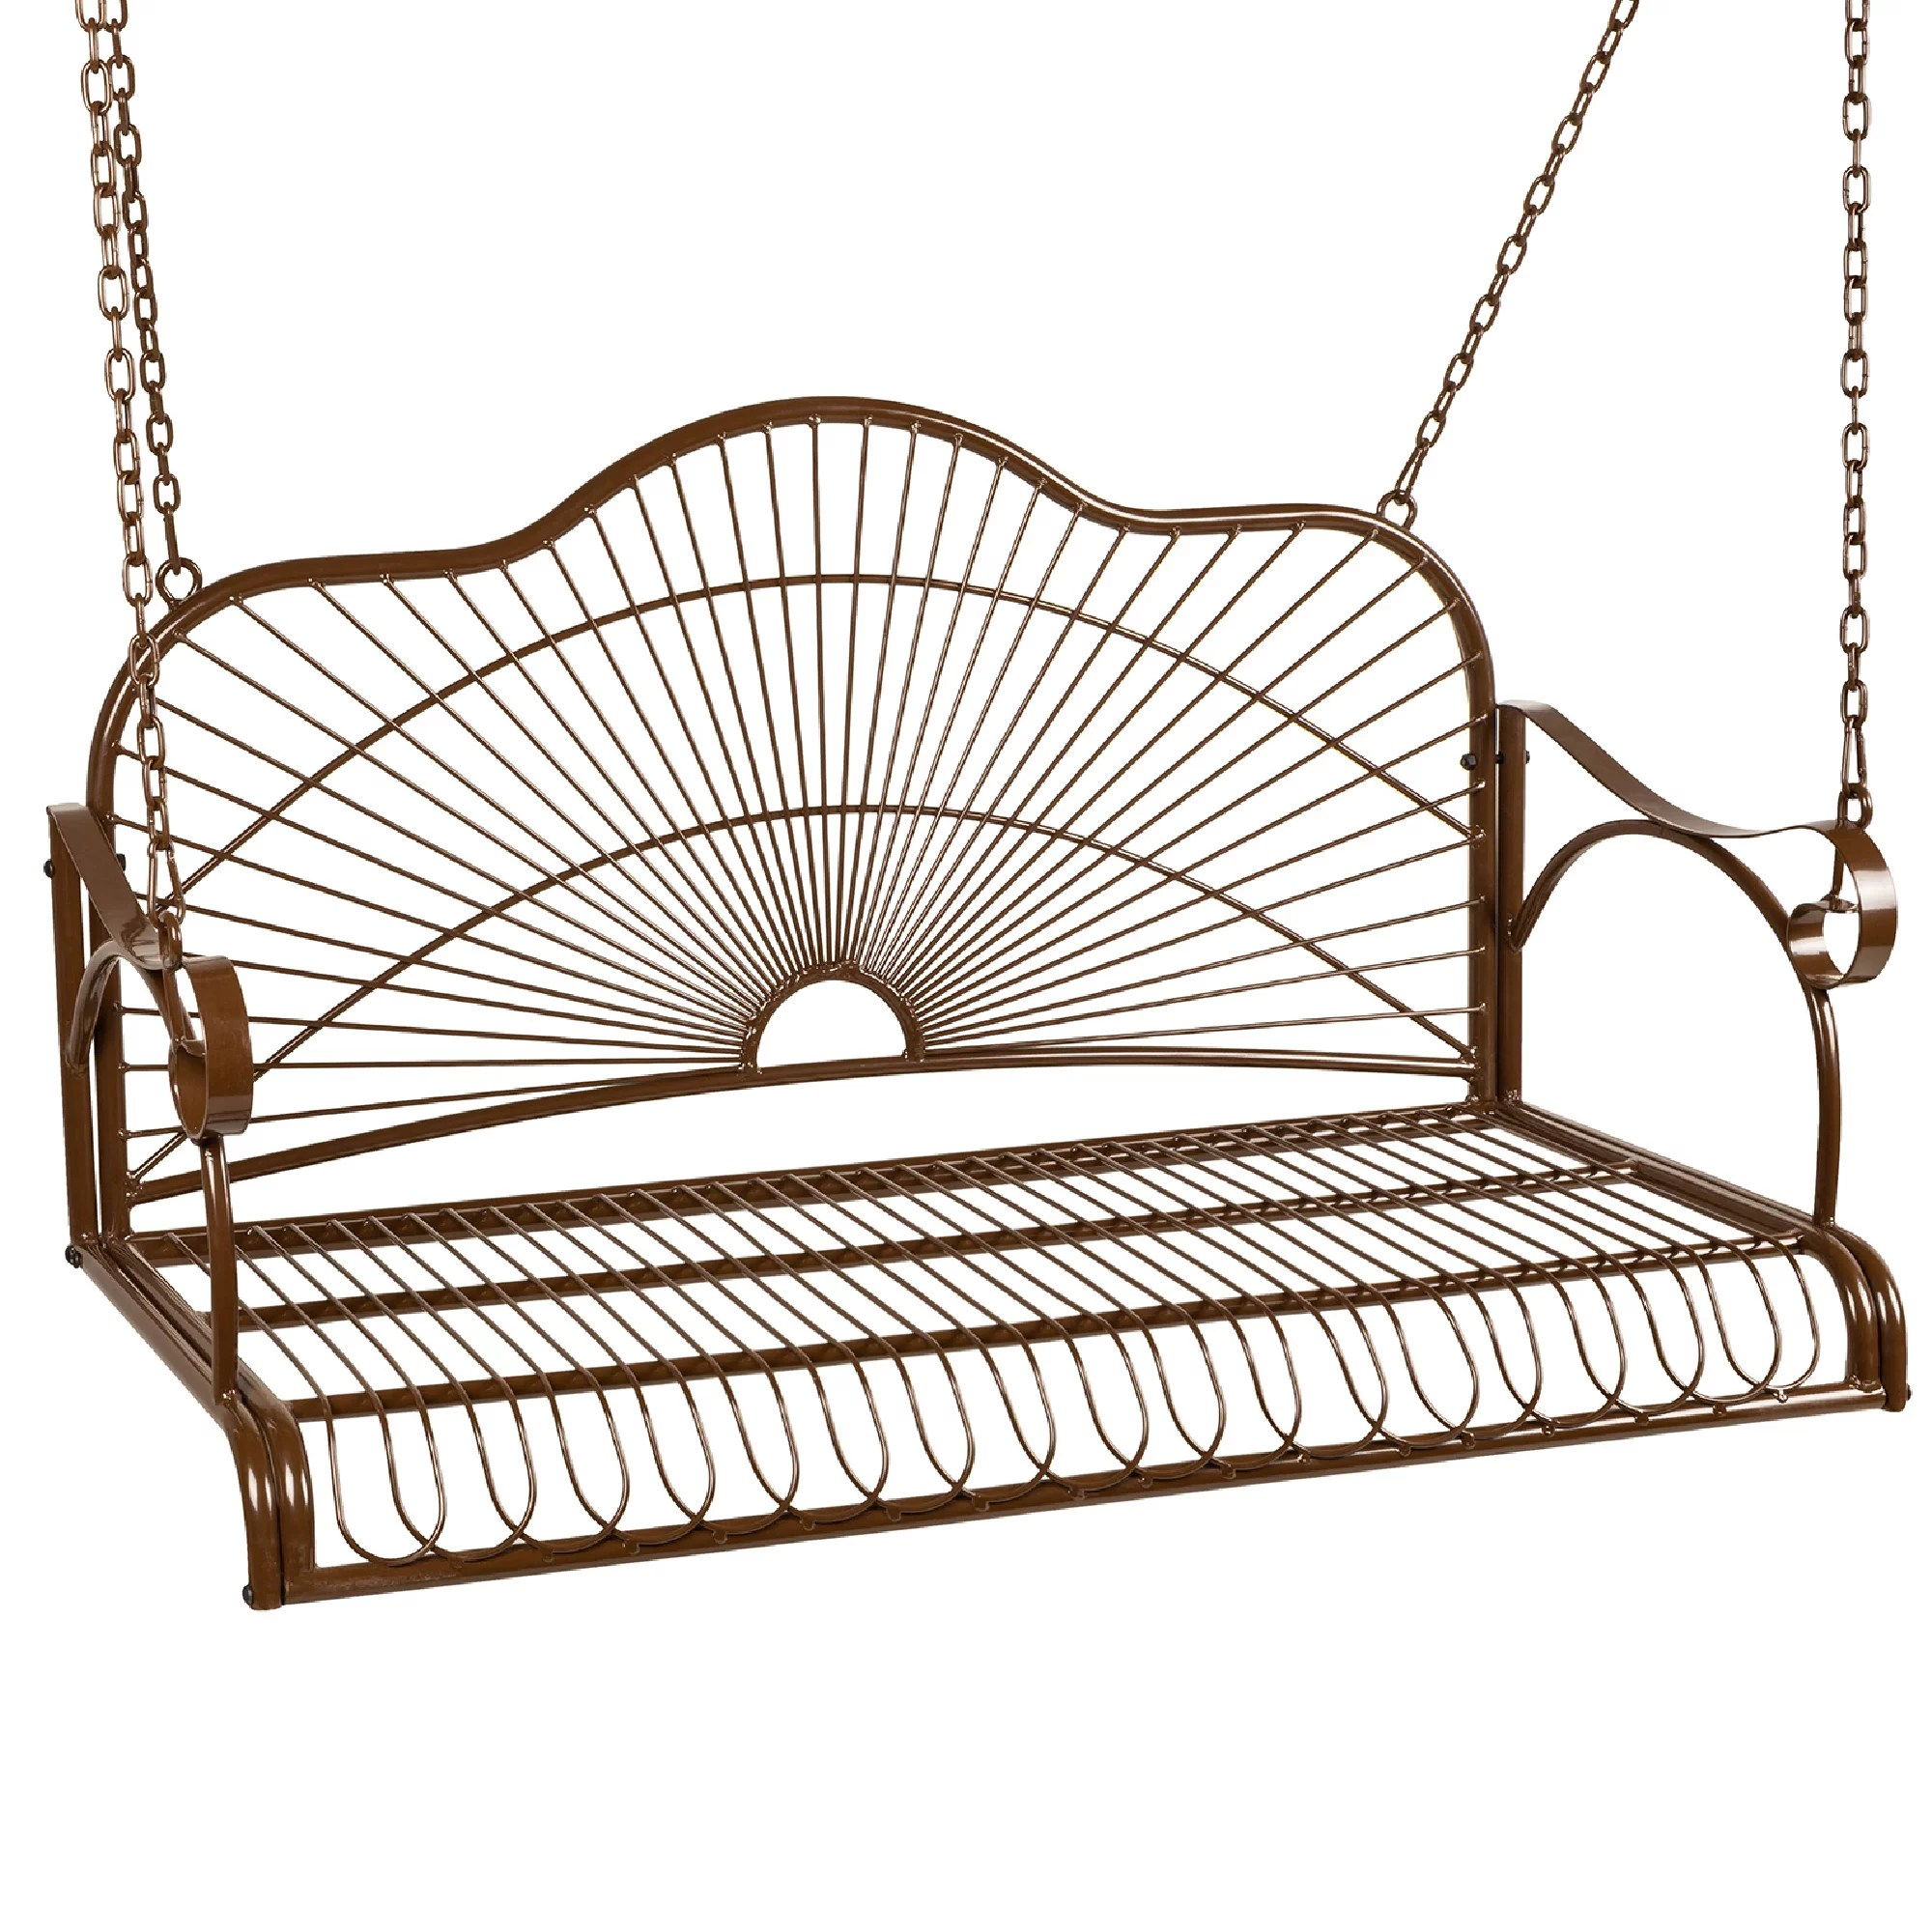 best choice products hanging iron porch swing outdoor patio furniture chair w armrests mounting chains walmart com